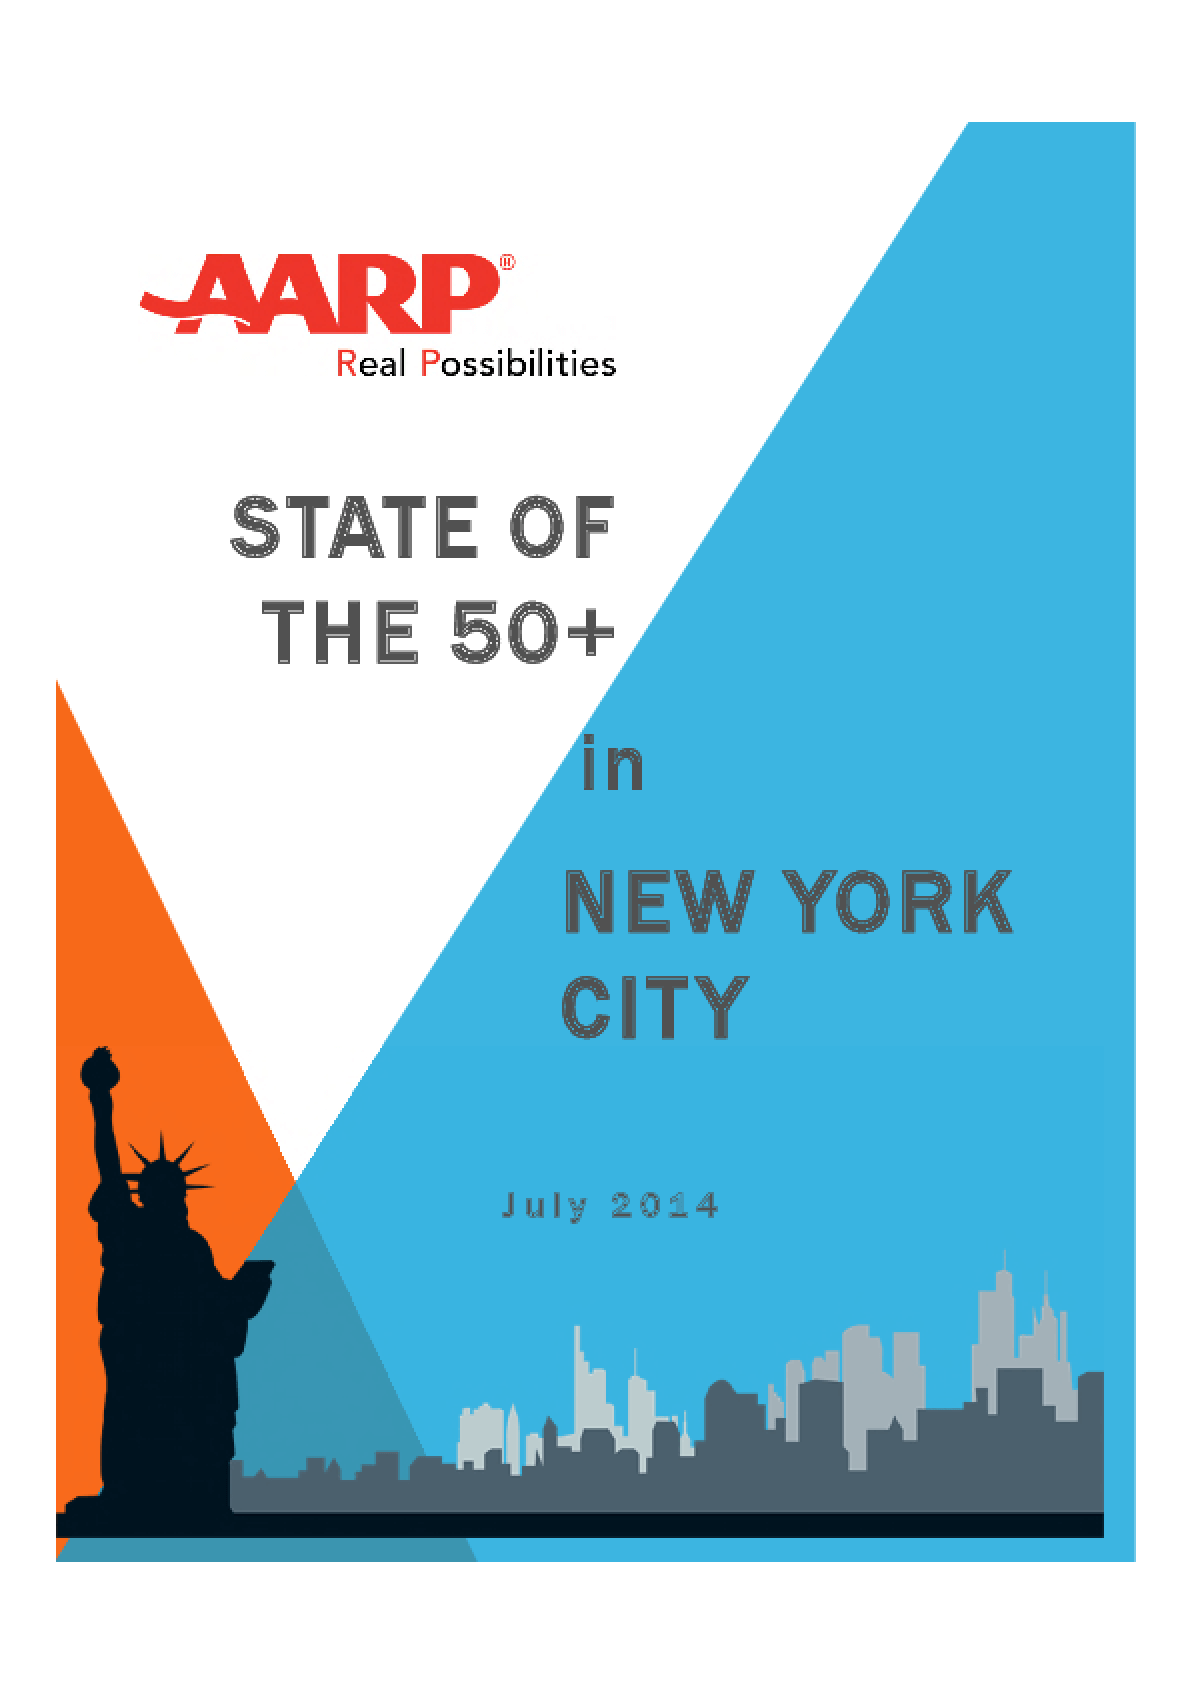 State of the 50+ in New York City